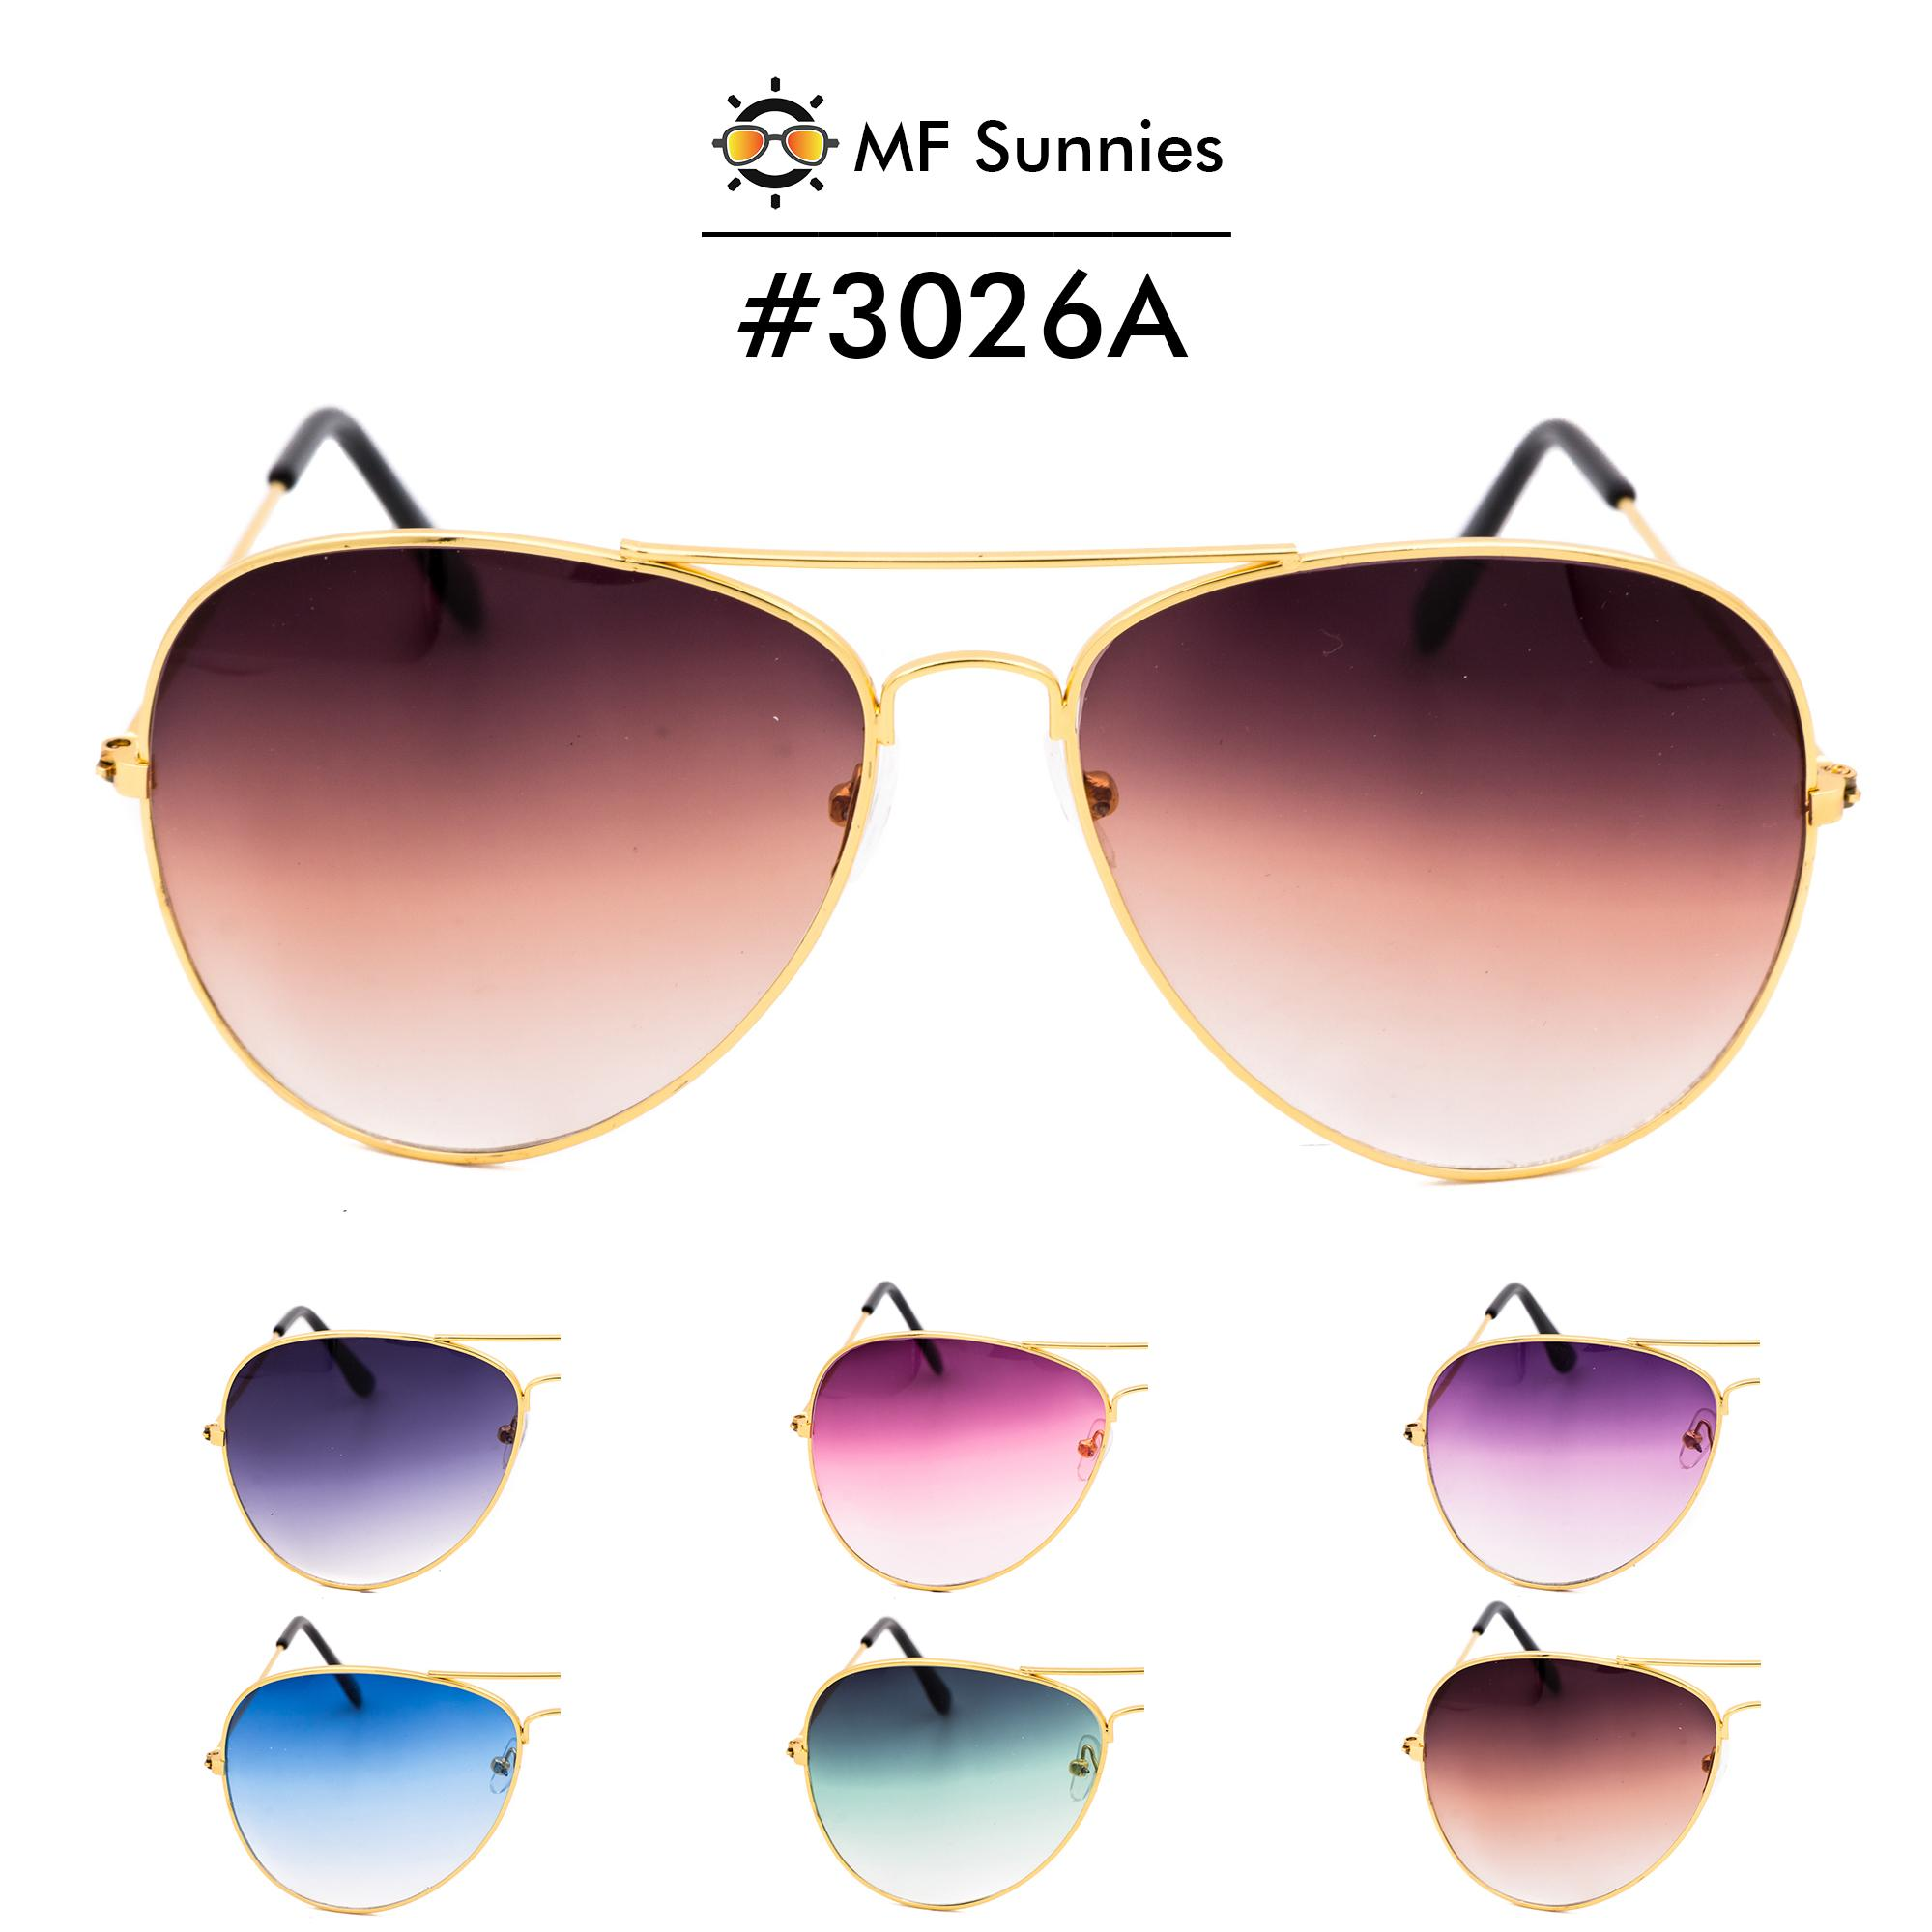 Sunglasses for men for sale mens sunglasses online brands prices mfsunnies sunnies gradient lens metal frame aviator style fashion eyewear 3026a ccuart Images